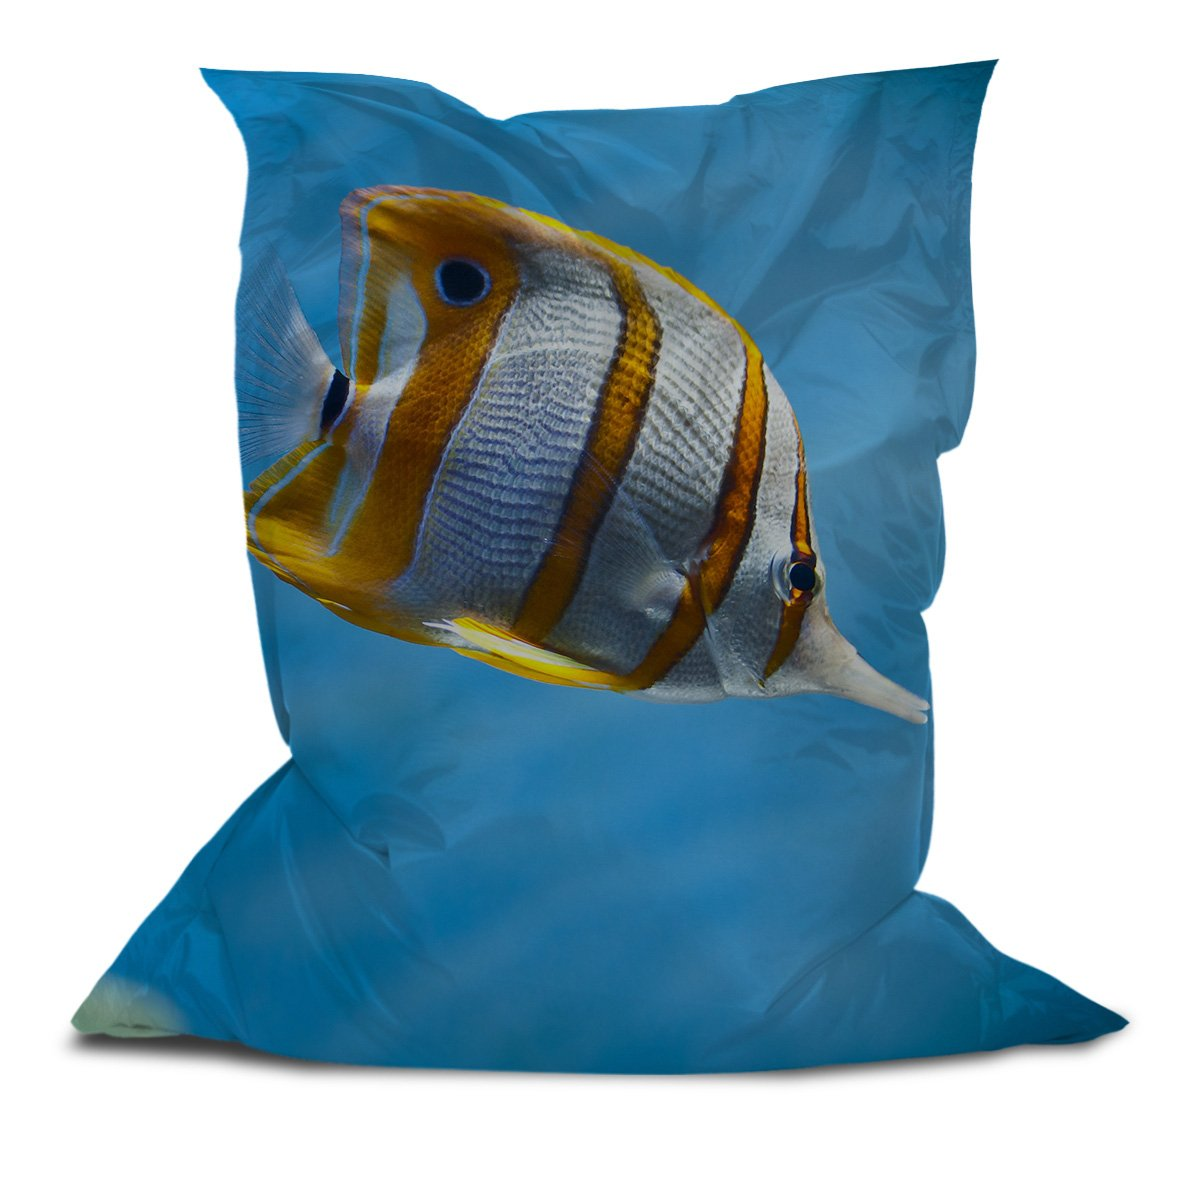 Branded Bean Bag with Printed Fish (5' x 4.4')